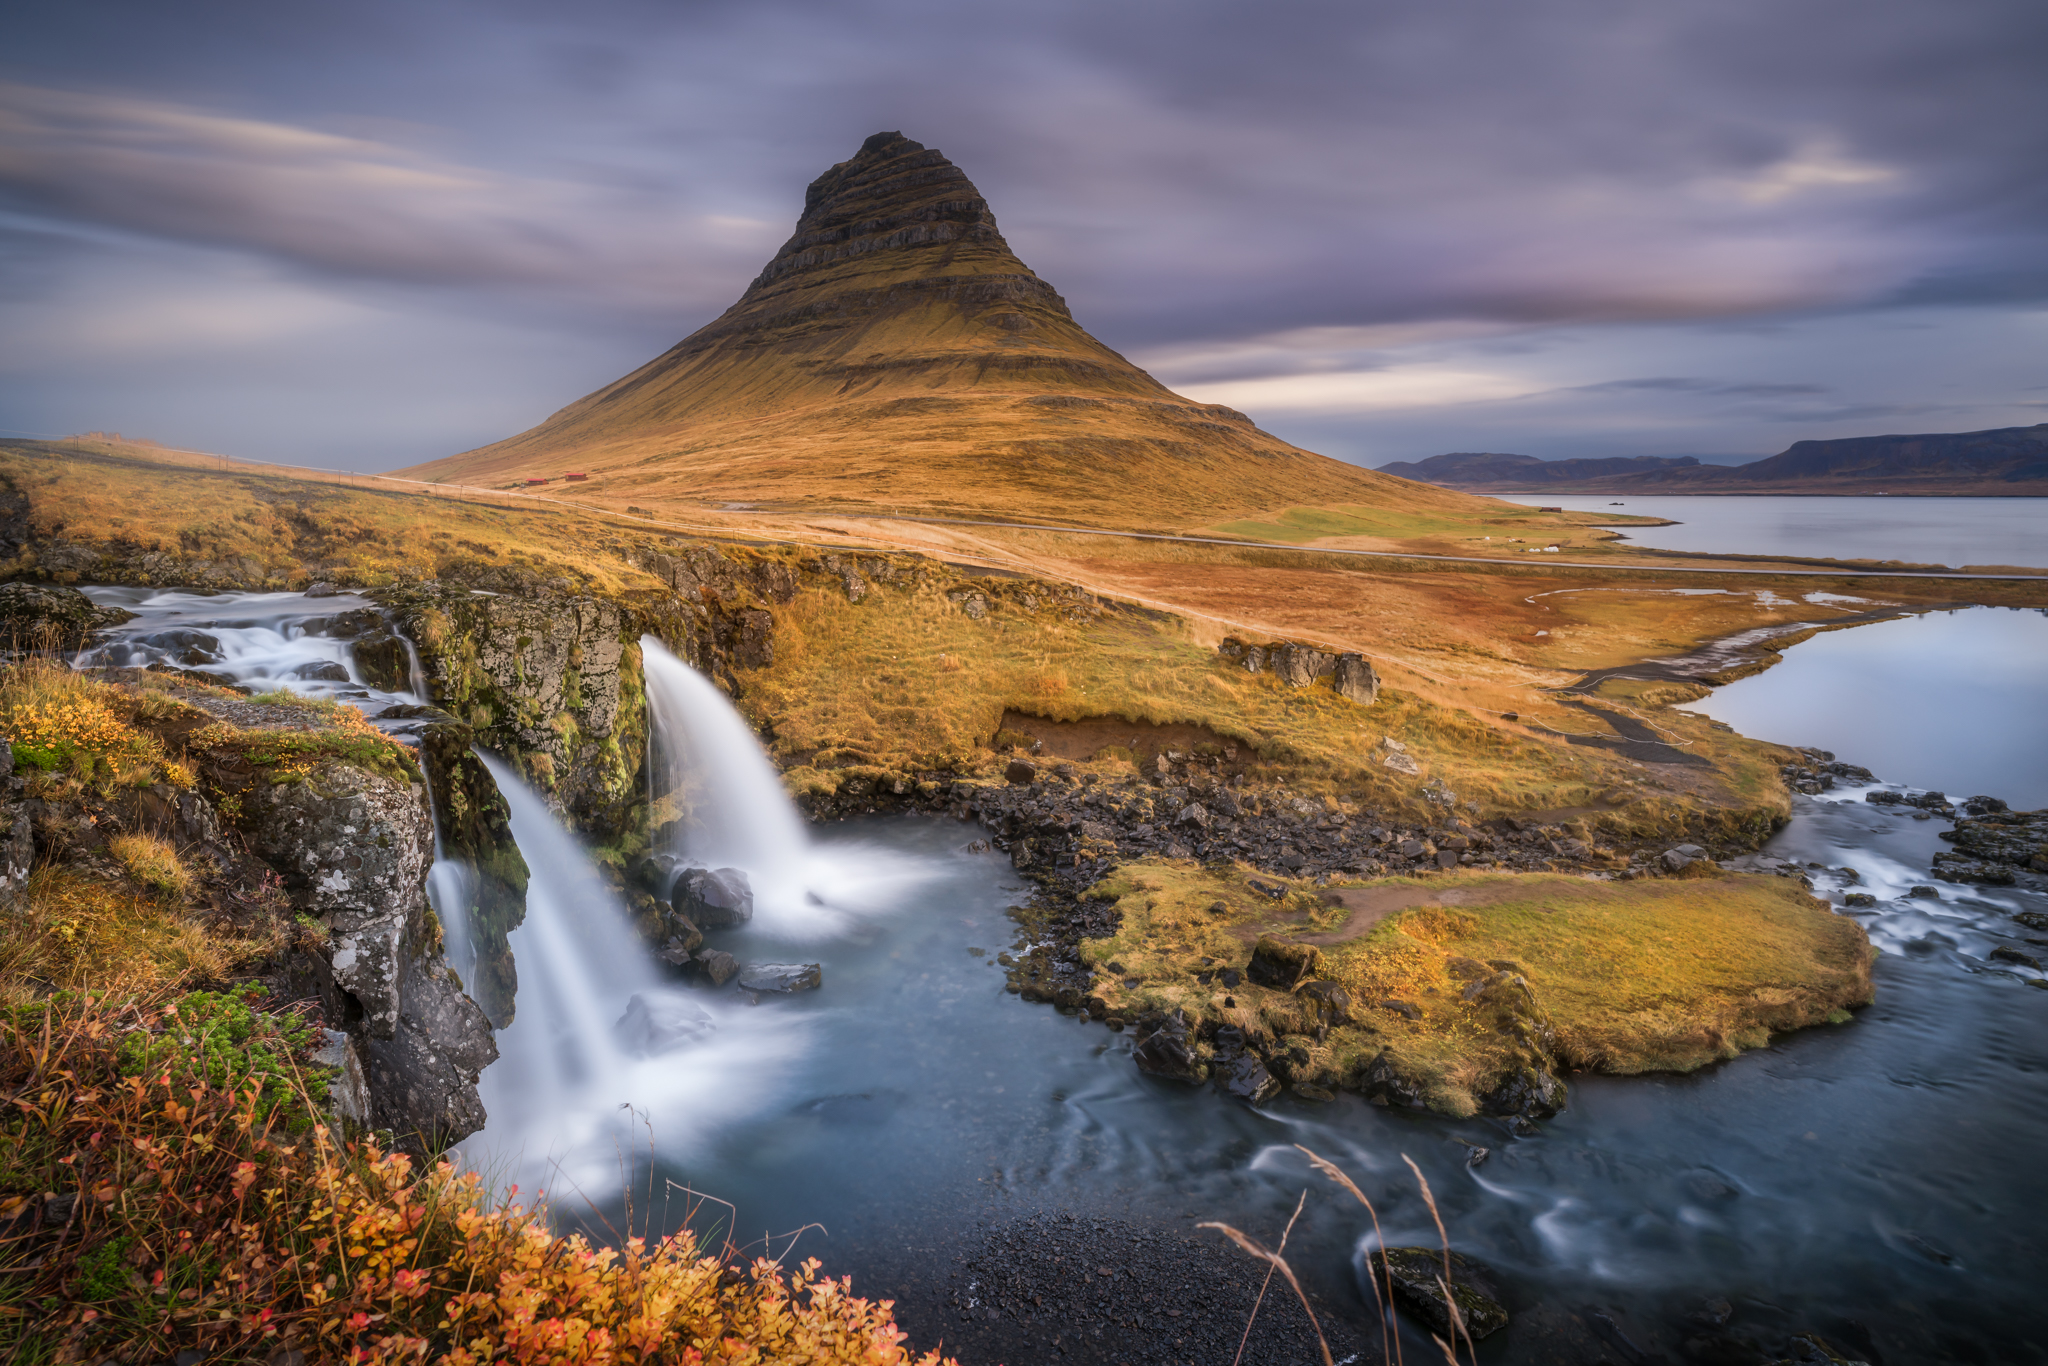 Long exposure Tutorial – How to take your first long exposures